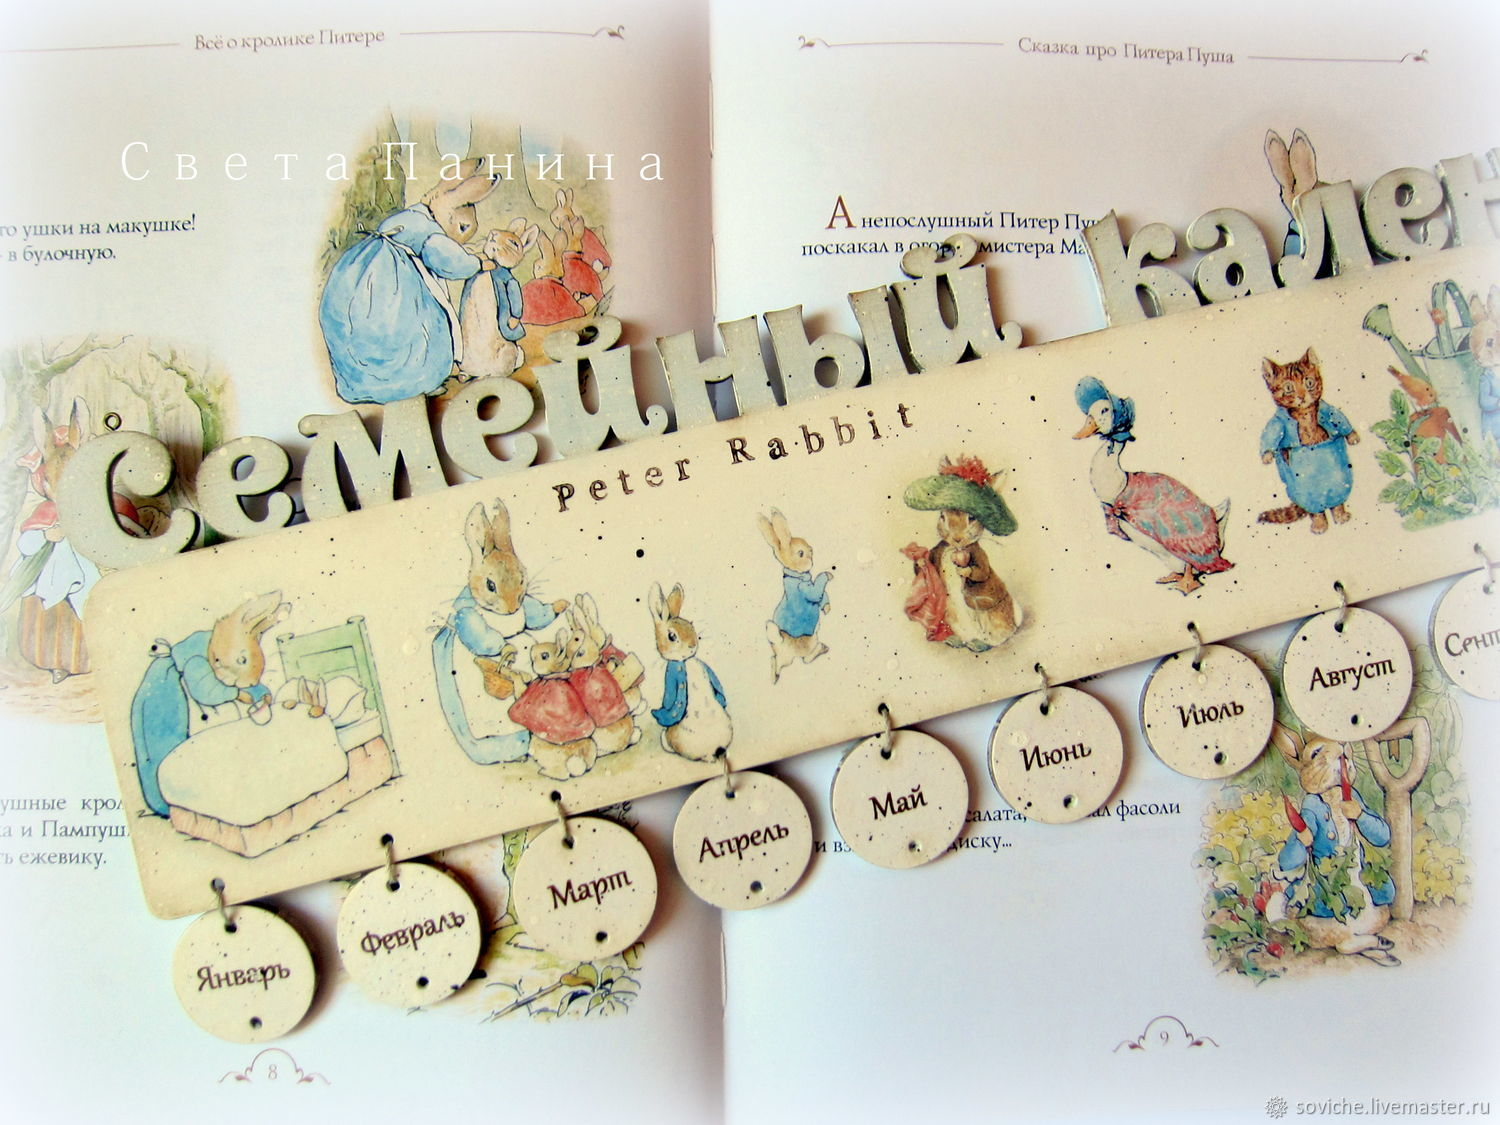 peter rabbit family calendar shop online on livemaster with